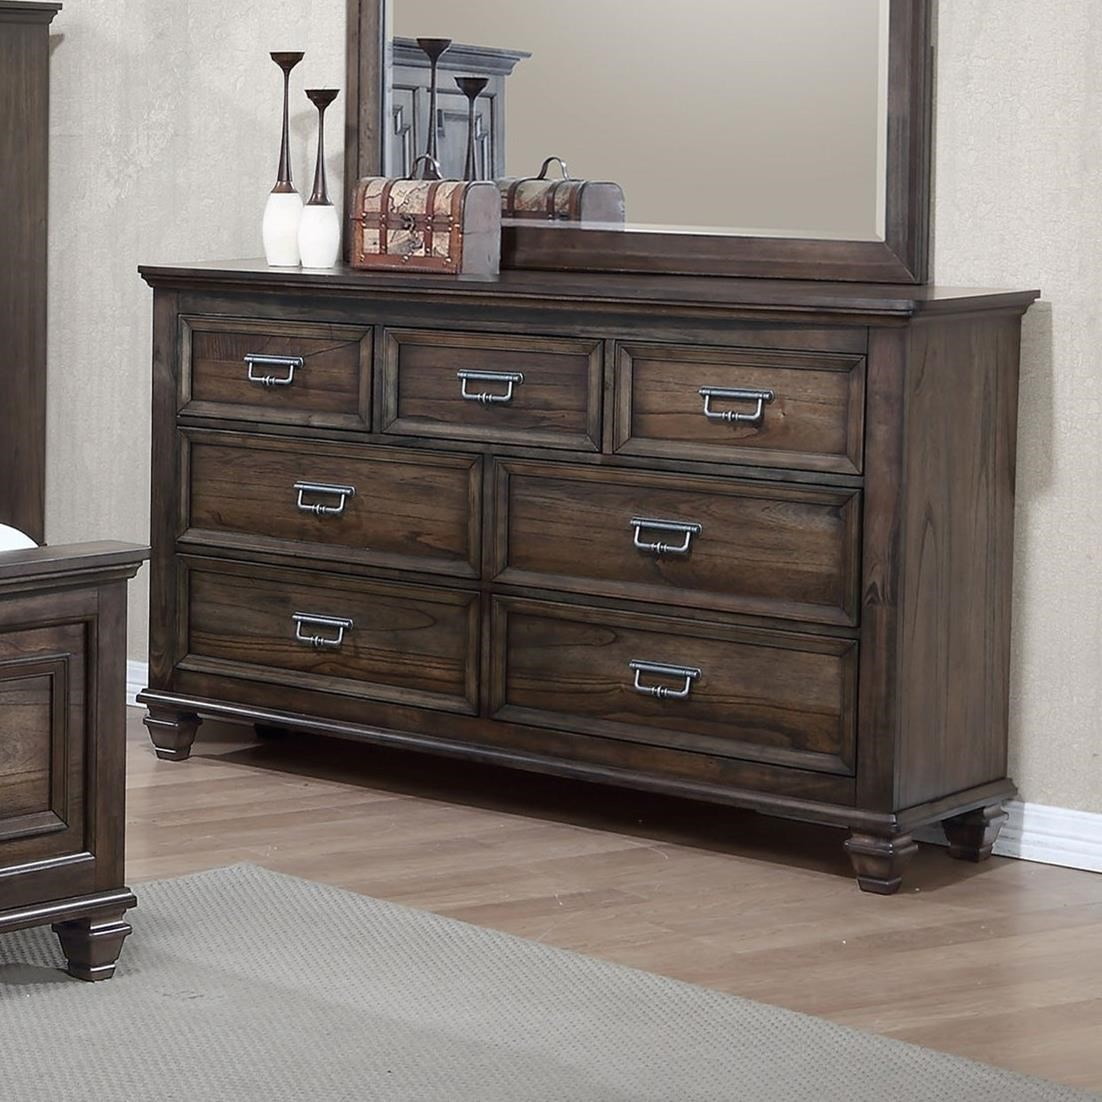 Crown mark campbell b8250 1 7 drawer dresser with modern for Furniture markup